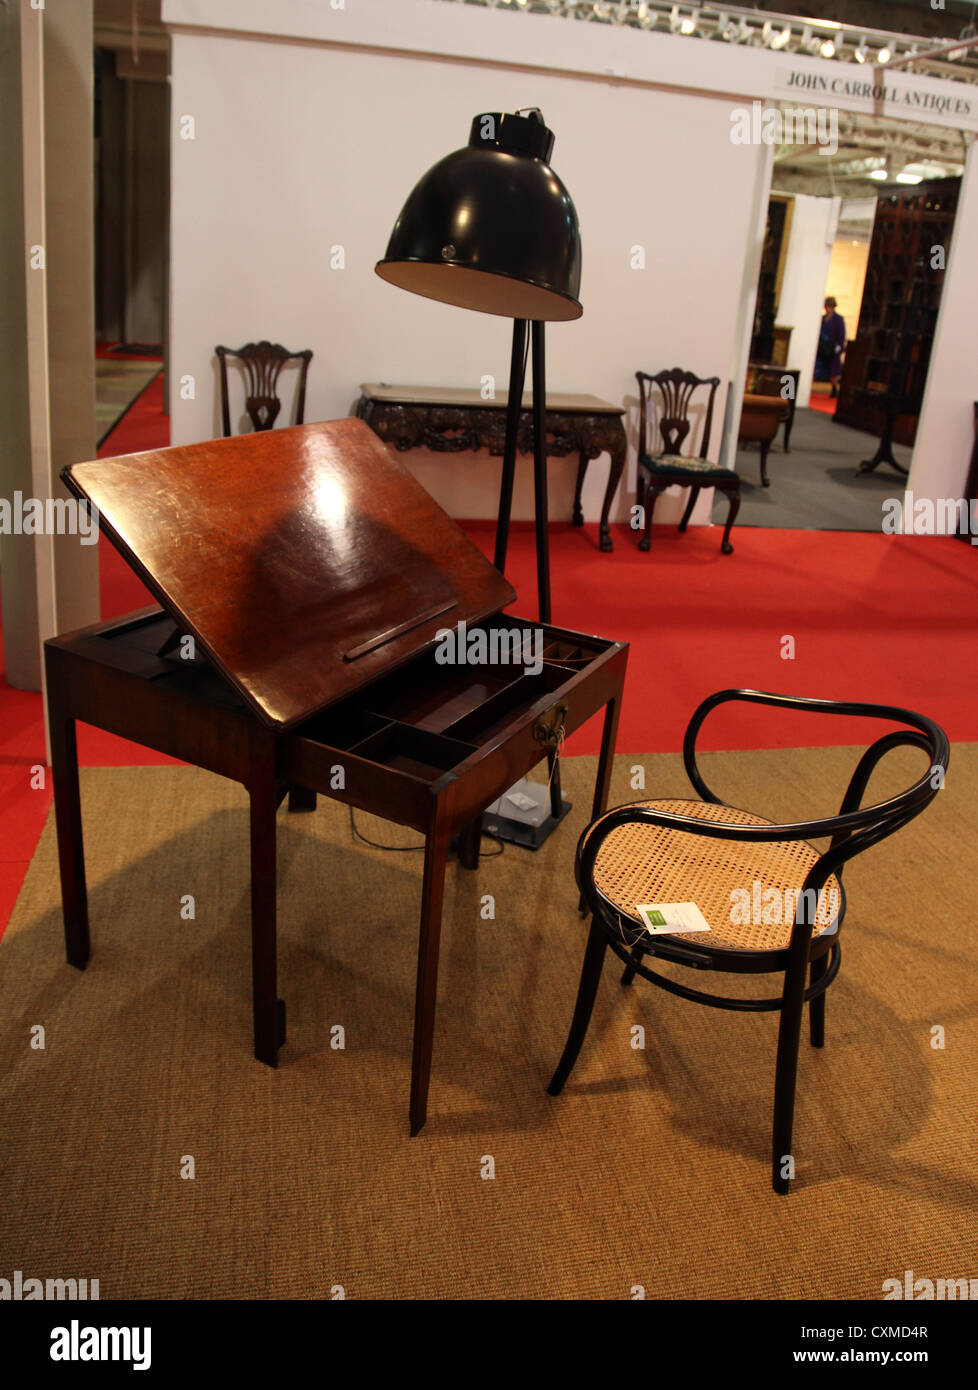 eclectic mix of 21st century and antique furniture at the Irish Antique Dealers 47th Annual Fair, Dublin - Stock Image